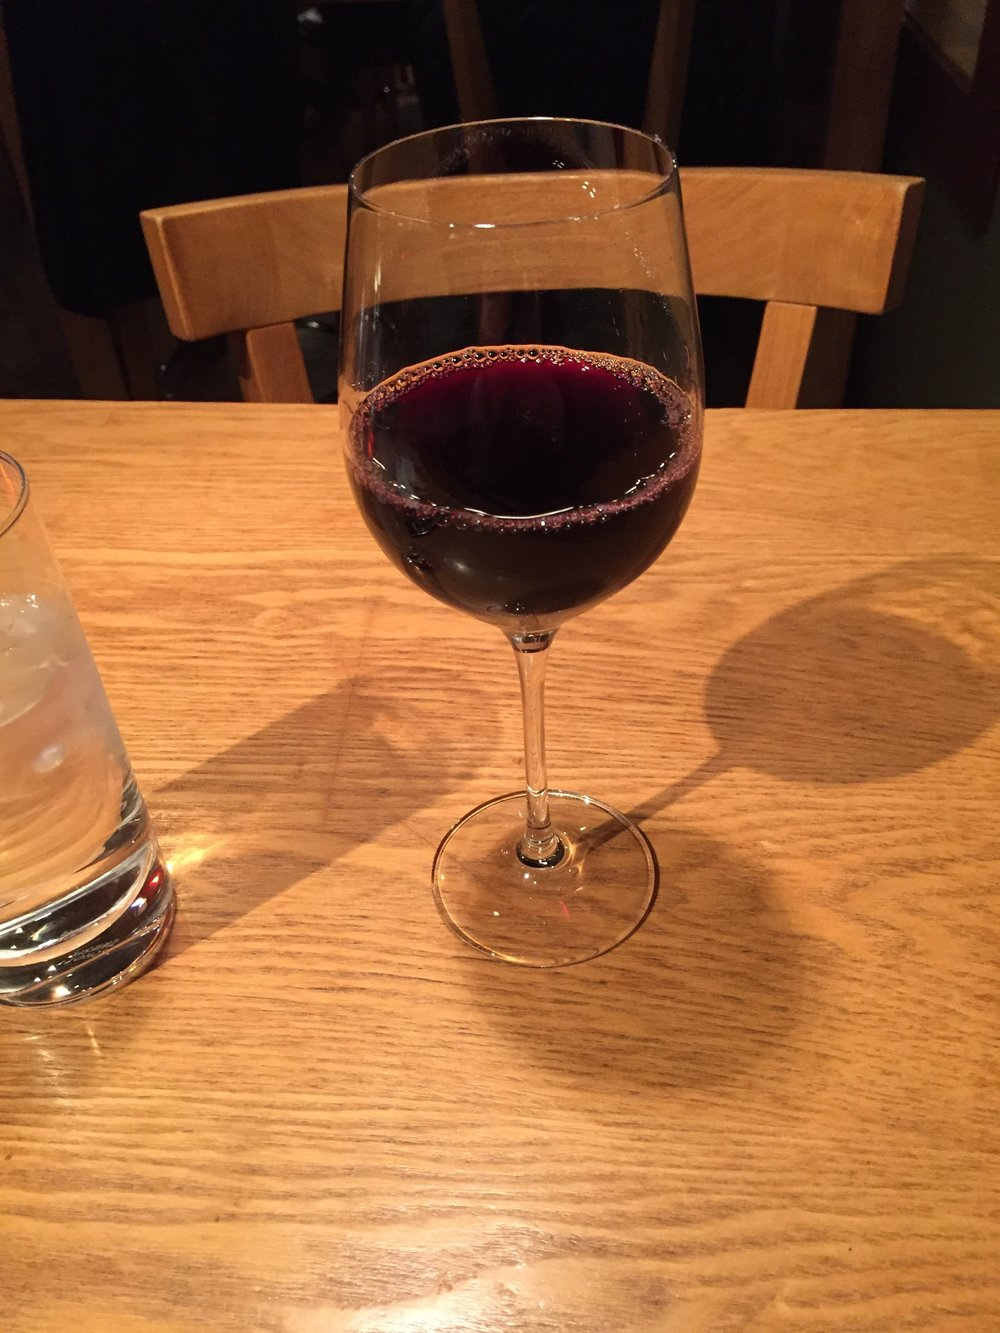 A delightful glass of shiraz.